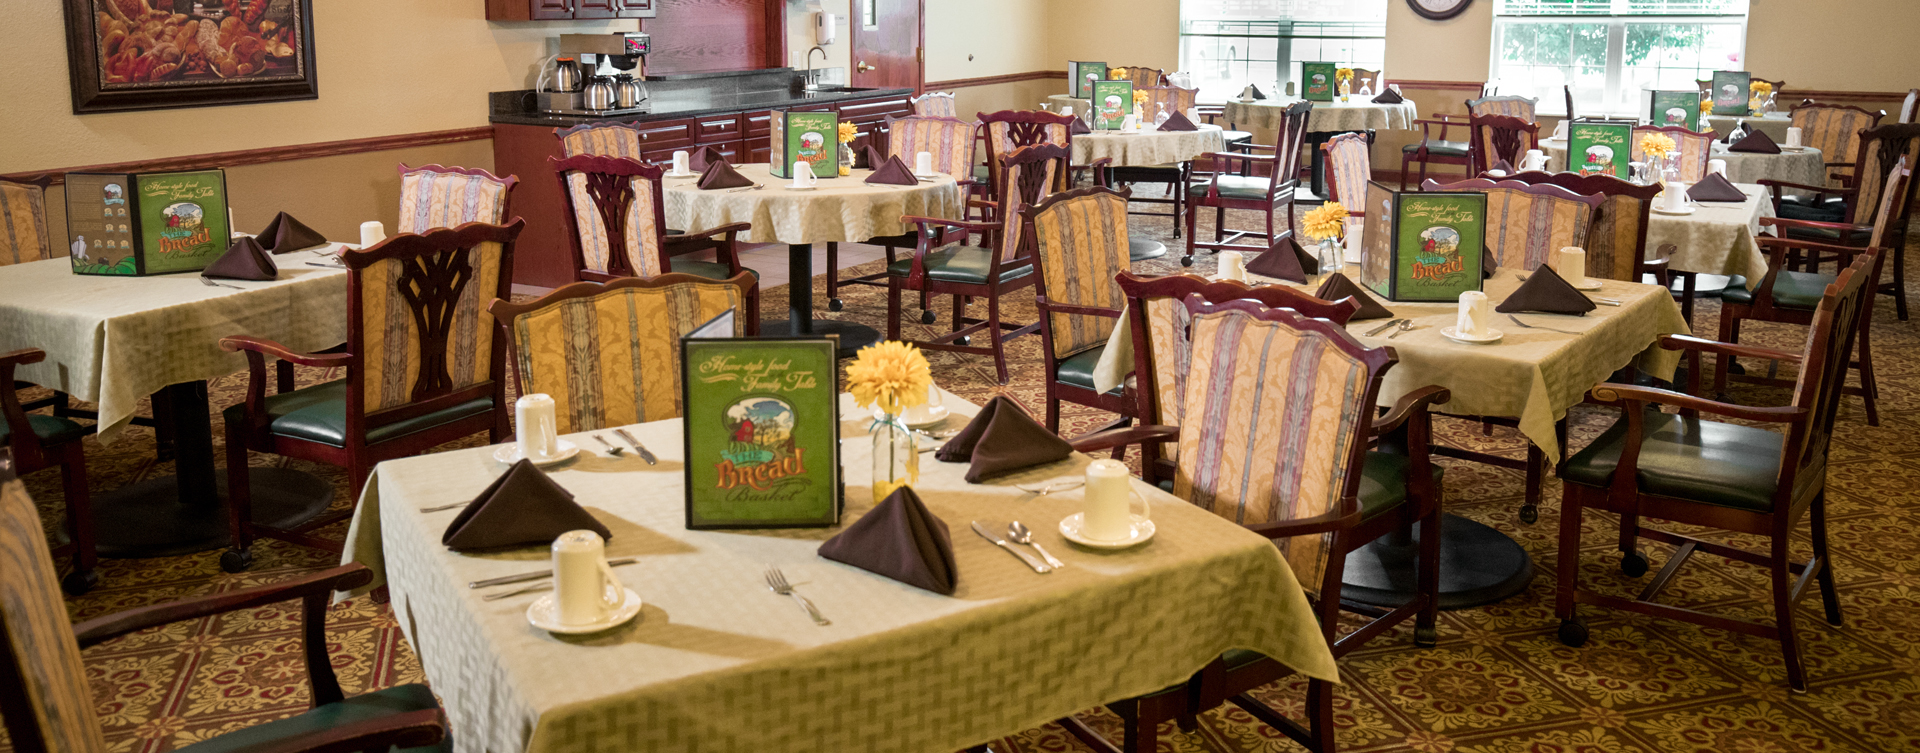 Enjoy homestyle food with made-from-scratch recipes in our dining room at Bickford of Quincy